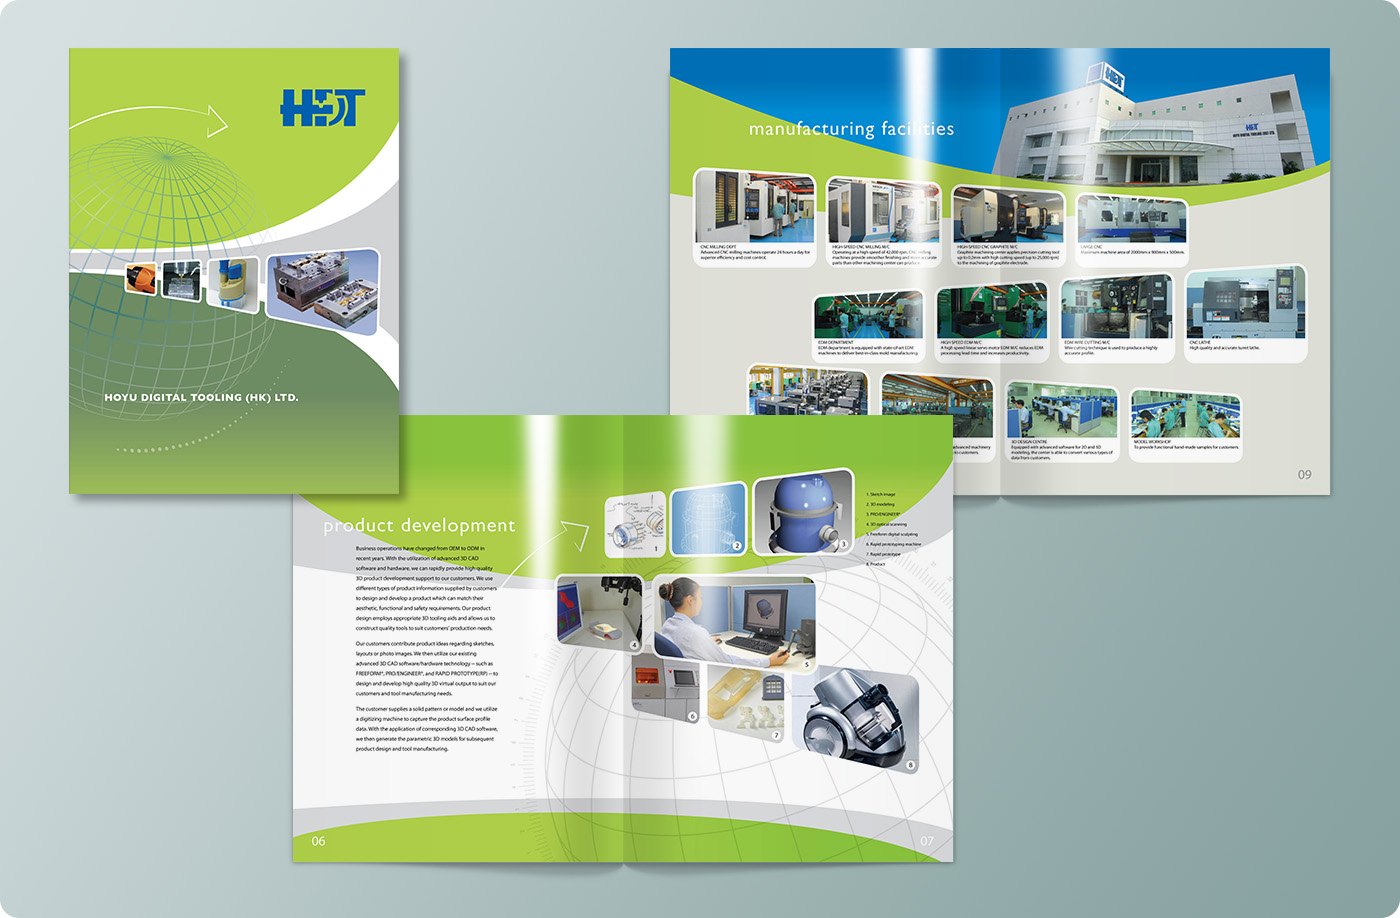 Hoyu Digital Tooling Hong Kong Limited Corporate Brochure Design